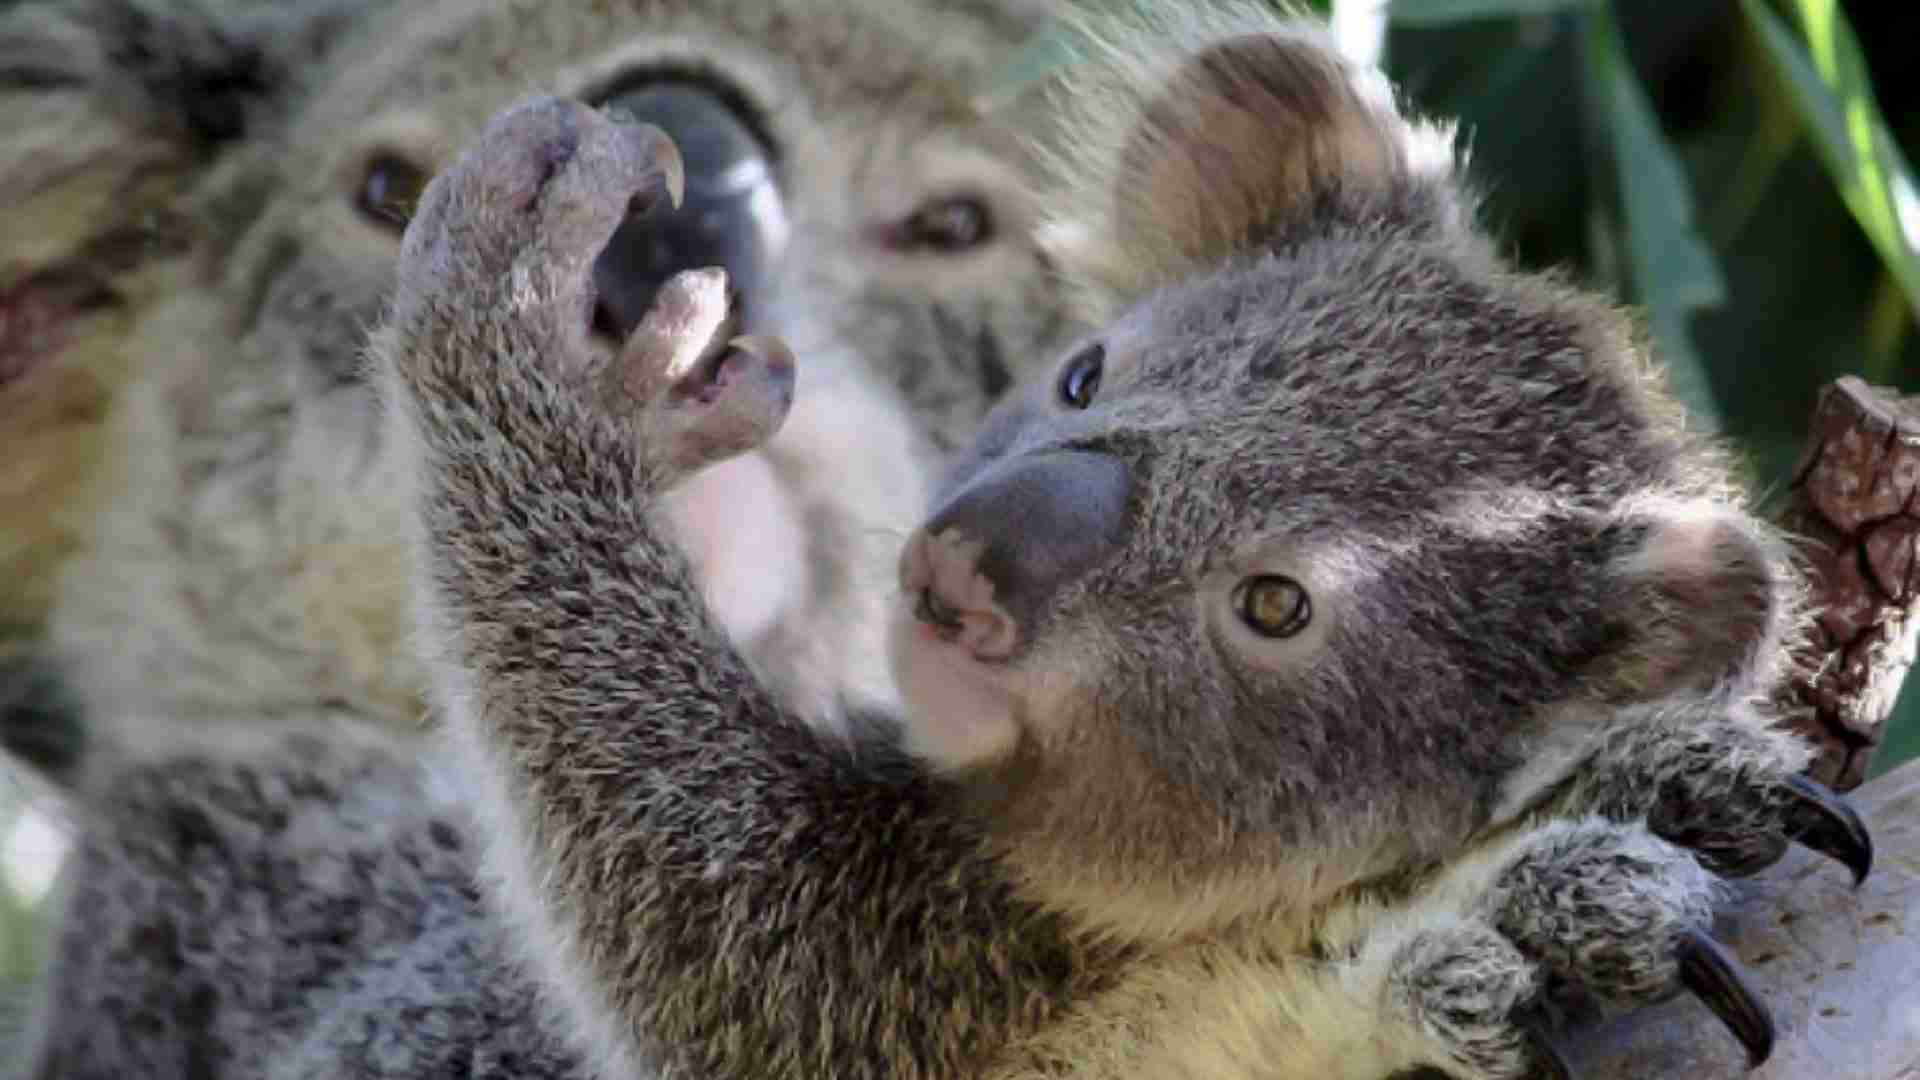 Mother and baby koala in a tree the baby koala is holding his mother's nose with one paw